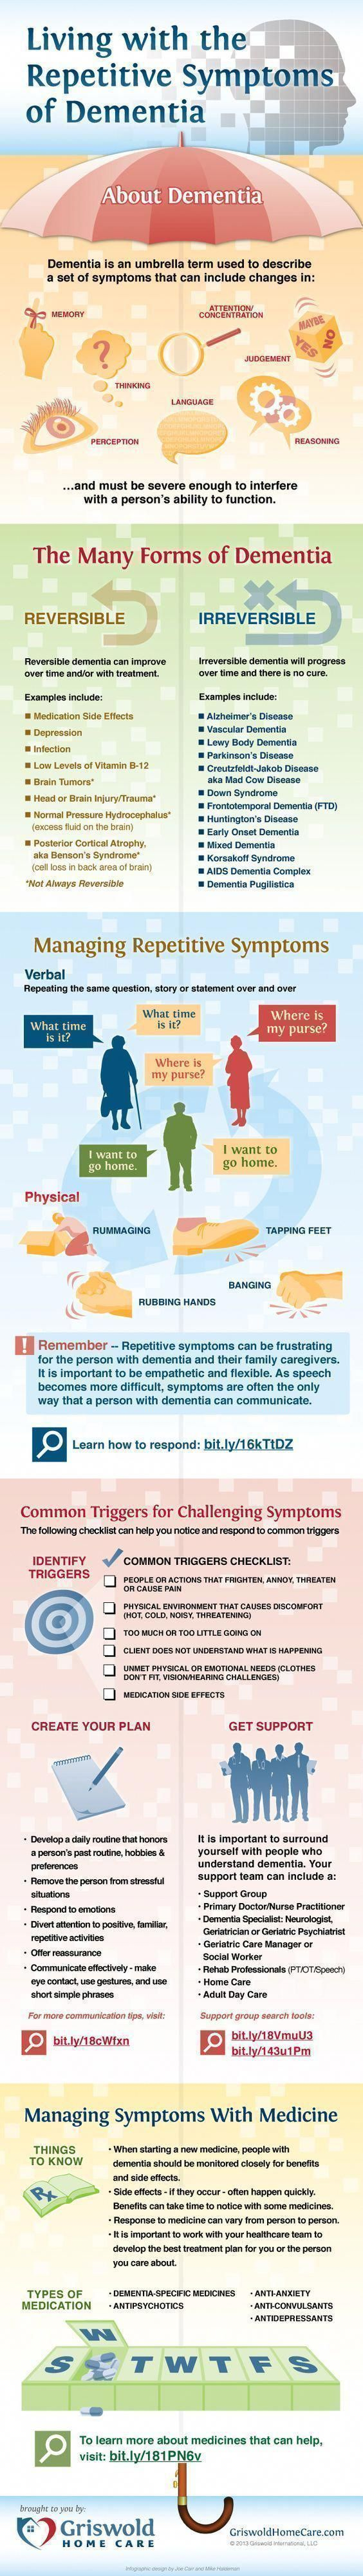 Did you know ❓ Living with the repetitive symptoms of Dementia. Source: Griswold Home Care #alzheimers #alzheimersfacts #dementiacaregivers #alzheimerscare